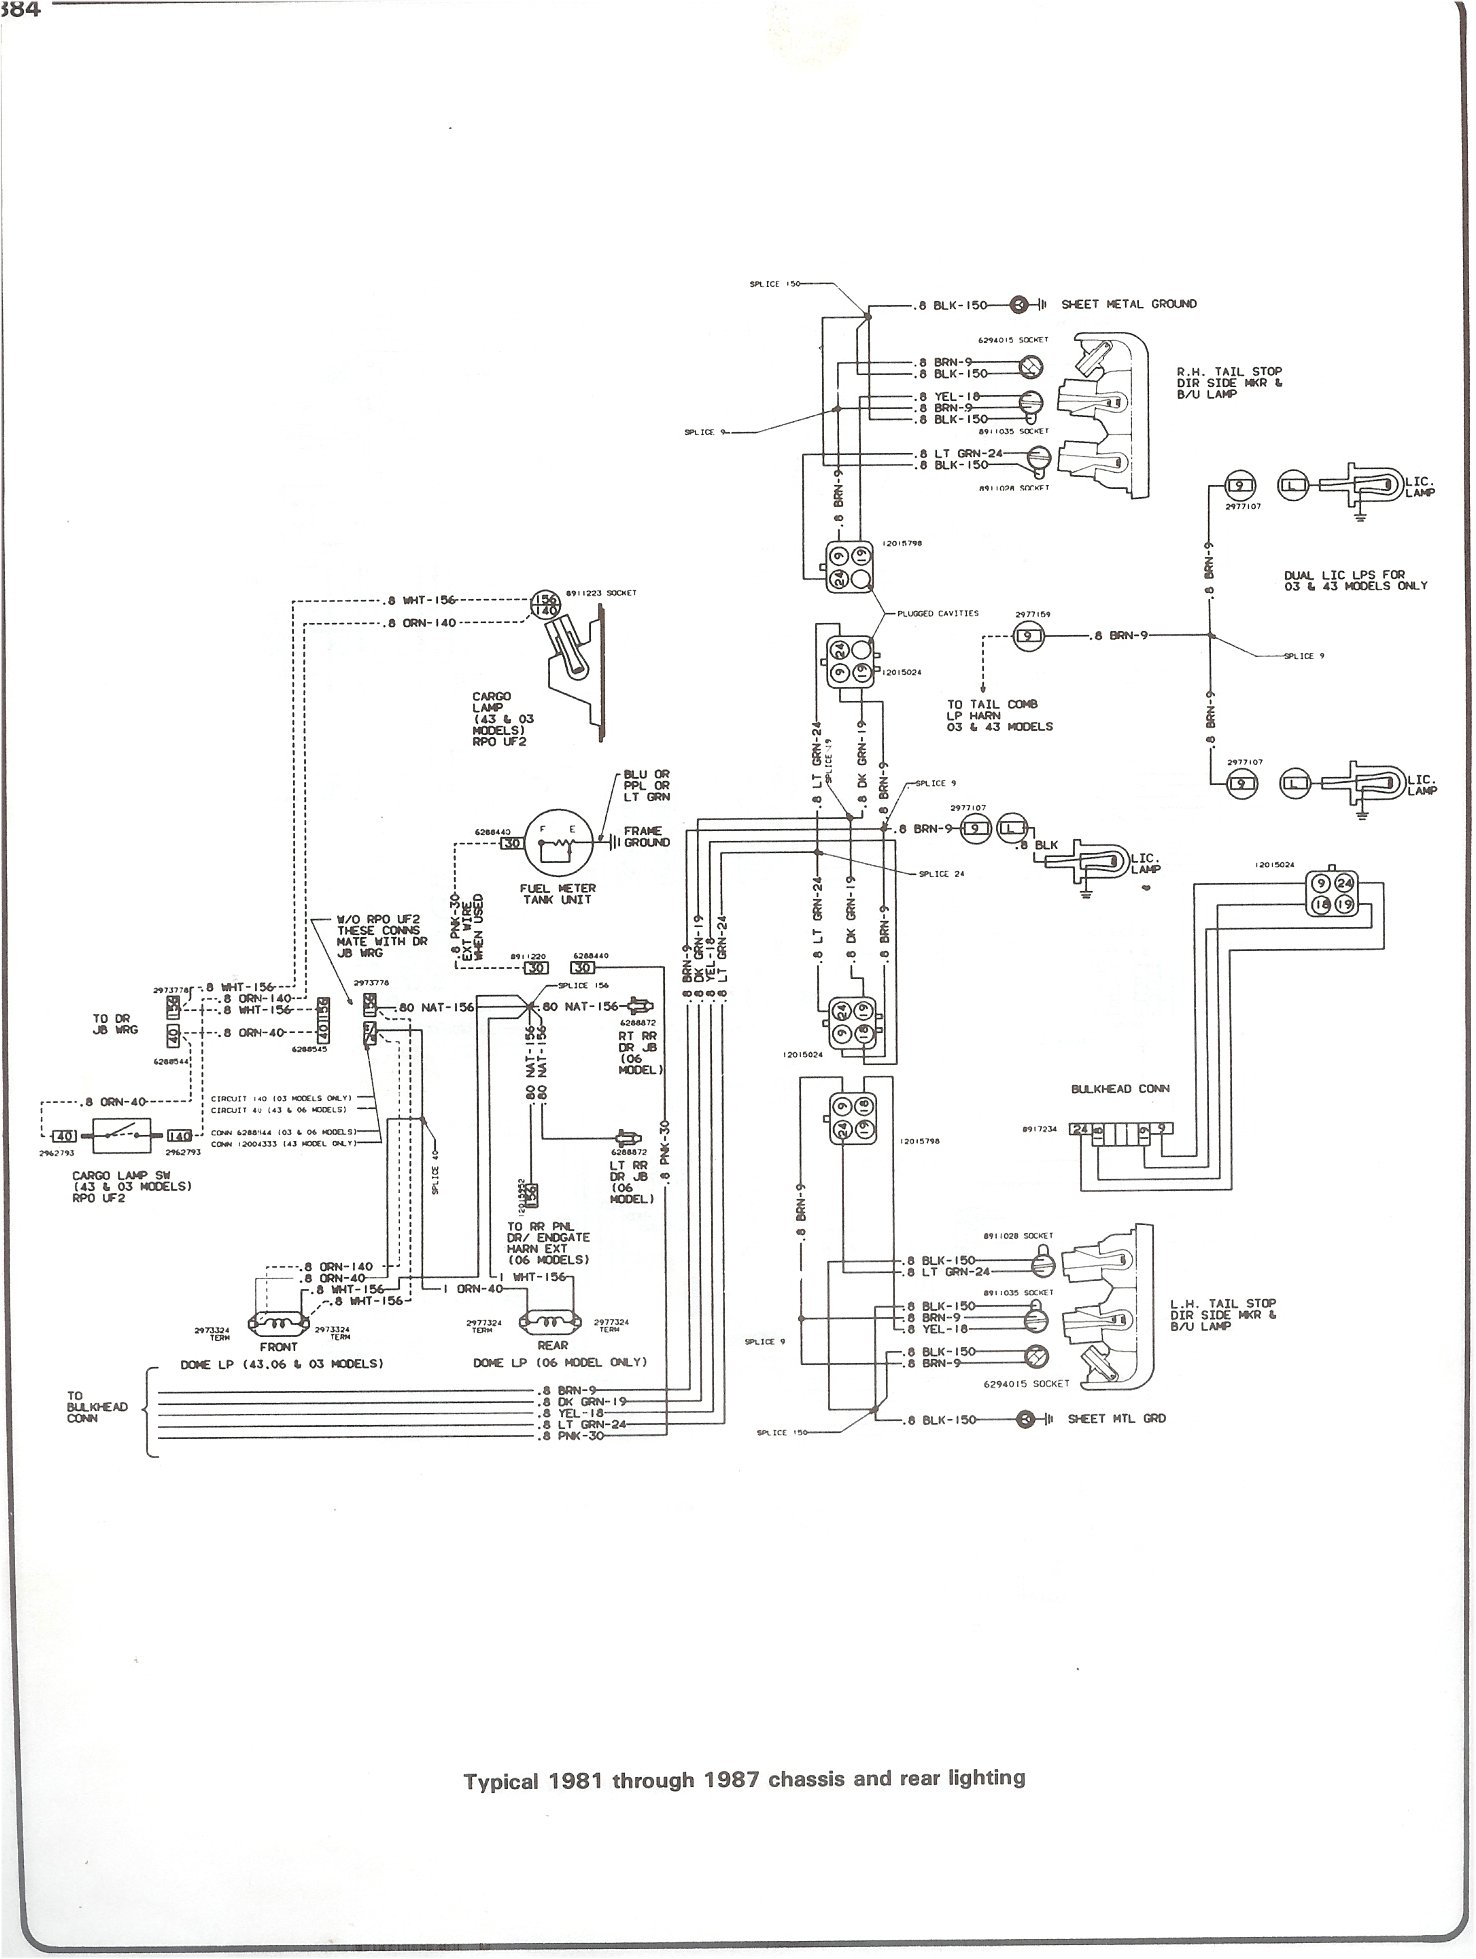 81 87_chass_rr_light complete 73 87 wiring diagrams 1984 chevy truck headlight wiring diagram at n-0.co